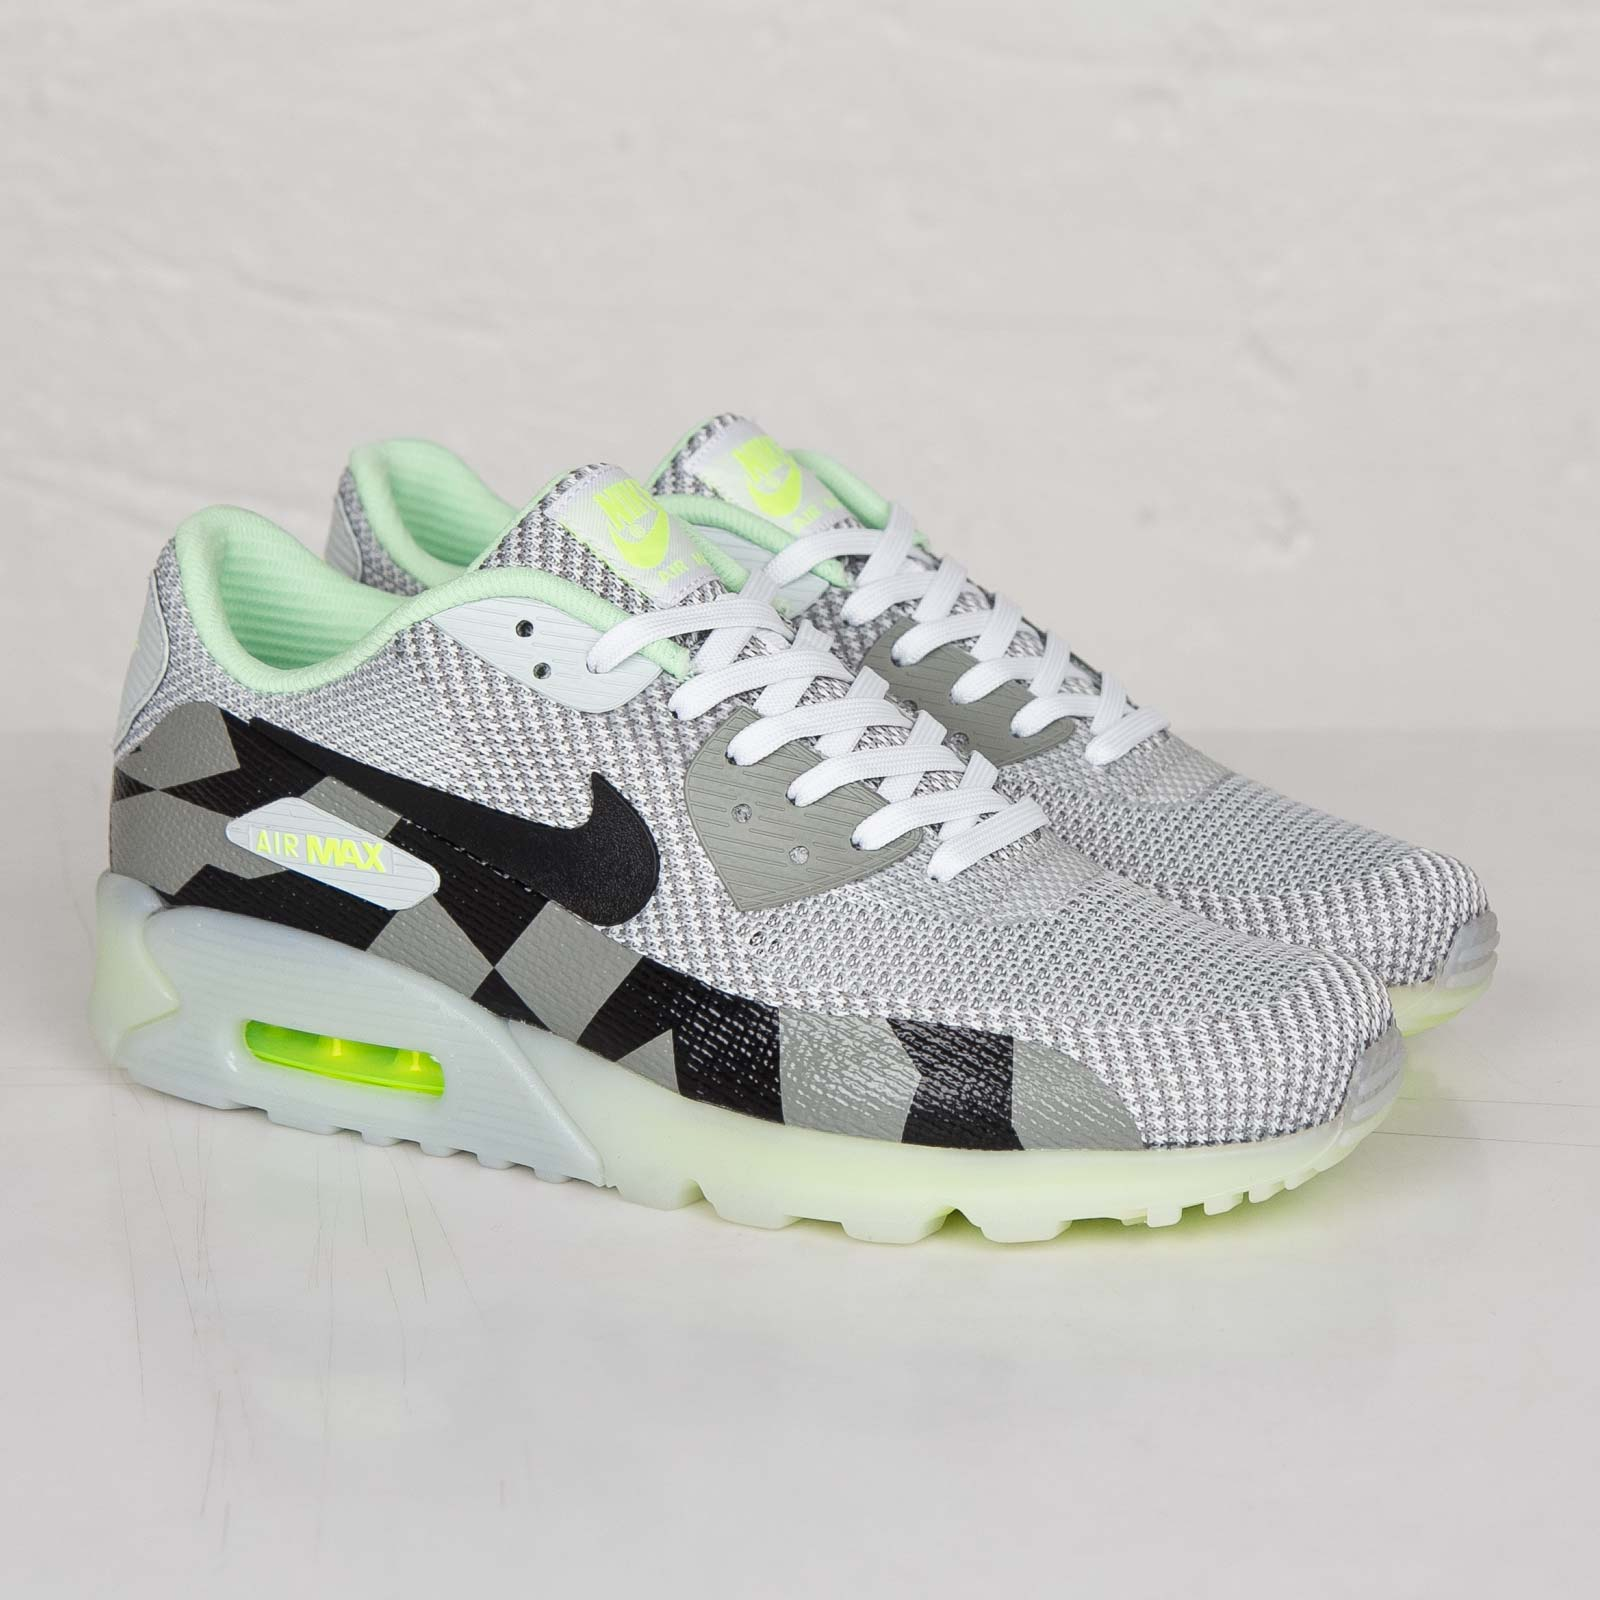 Nike Air Max 90 Knit Jacquard Ice QS 744553 100